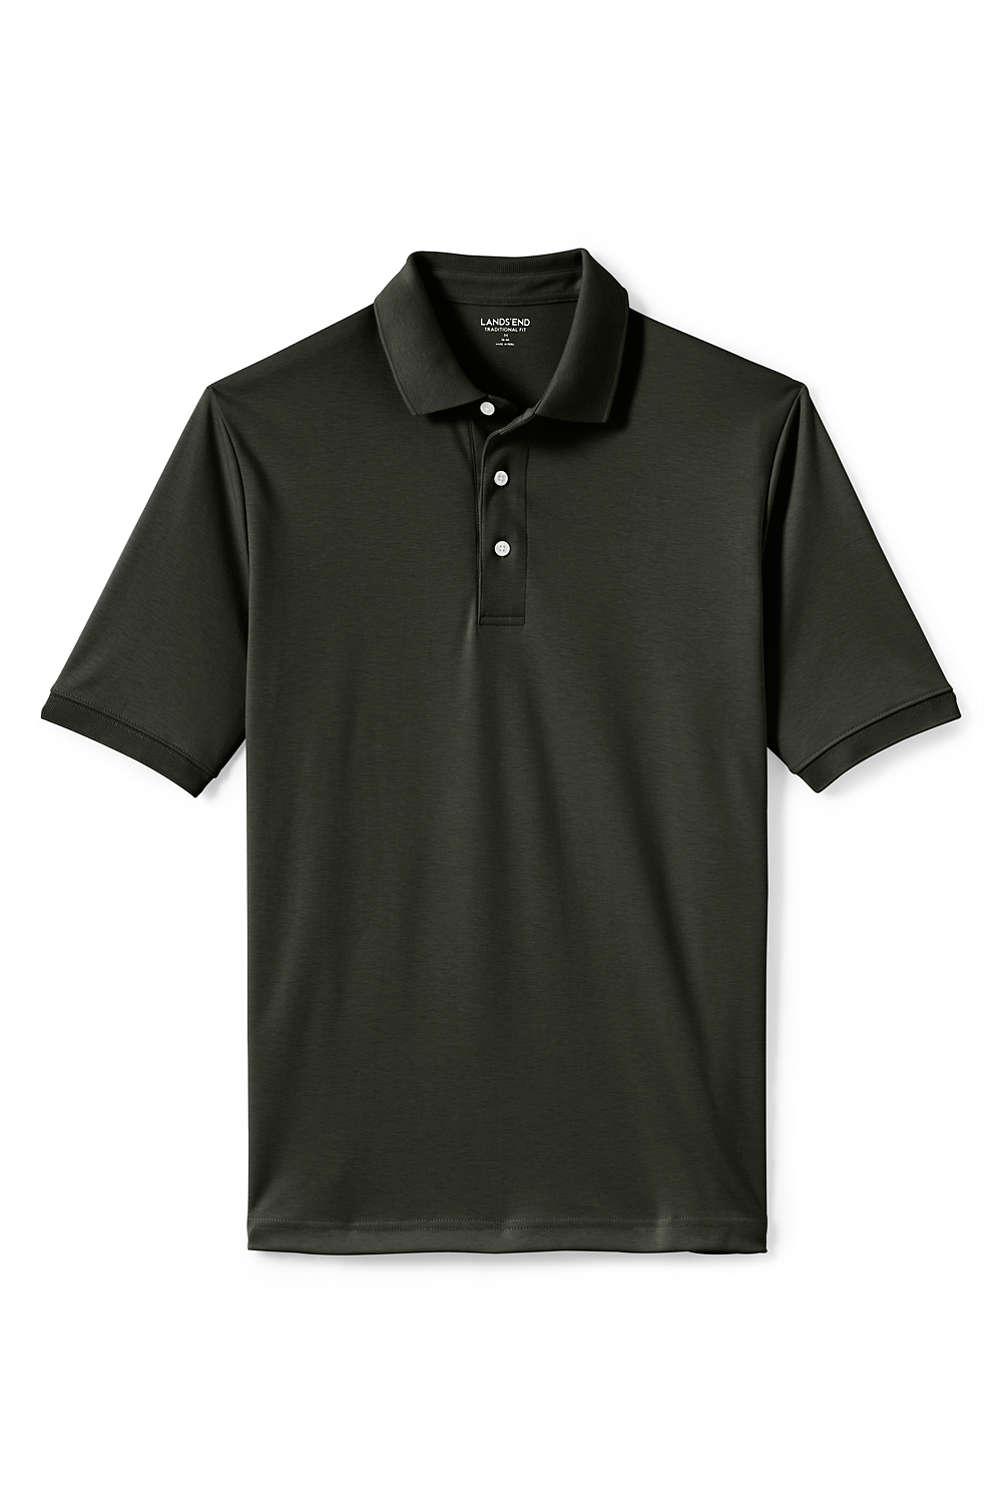 06d90efb76a0 Men s Short Sleeve Supima Polo Shirt from Lands  End